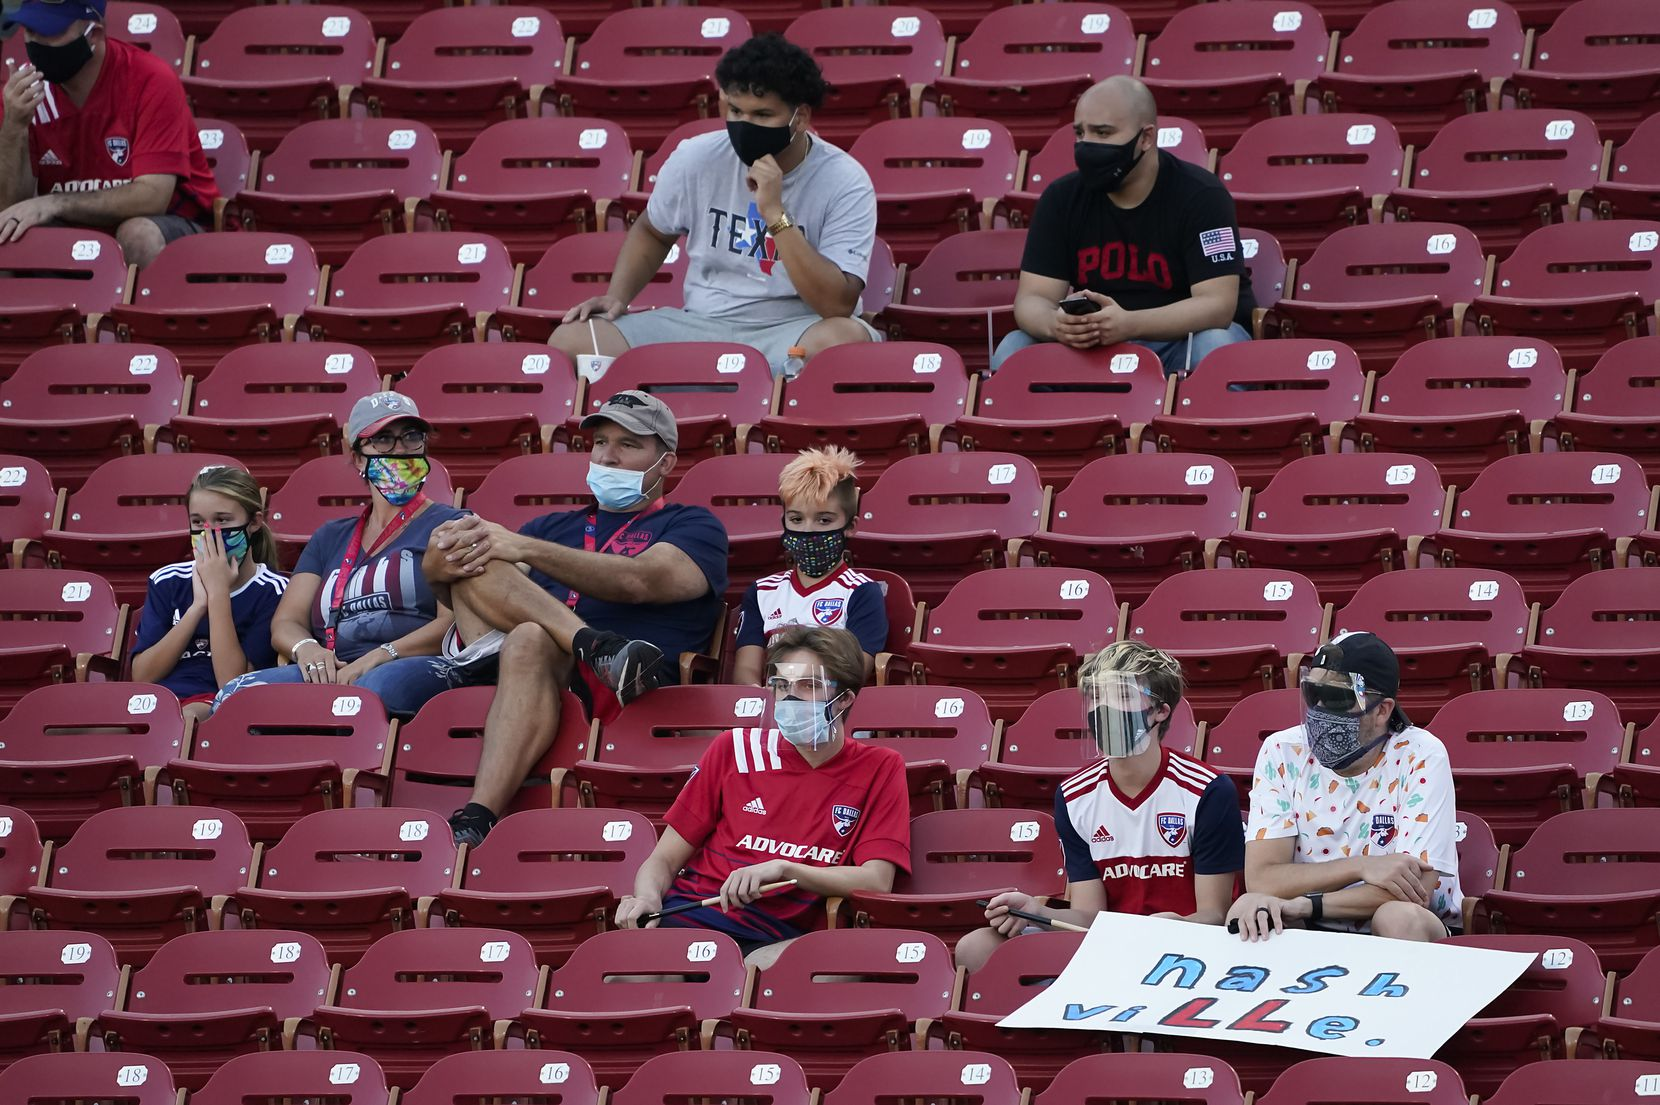 Socially distant fans watch FC Dallas during the first half of an MLS soccer game against Nashville SC at Toyota Stadium on Wednesday, Aug. 12, 2020, in Frisco, Texas. (Smiley N. Pool/The Dallas Morning News)